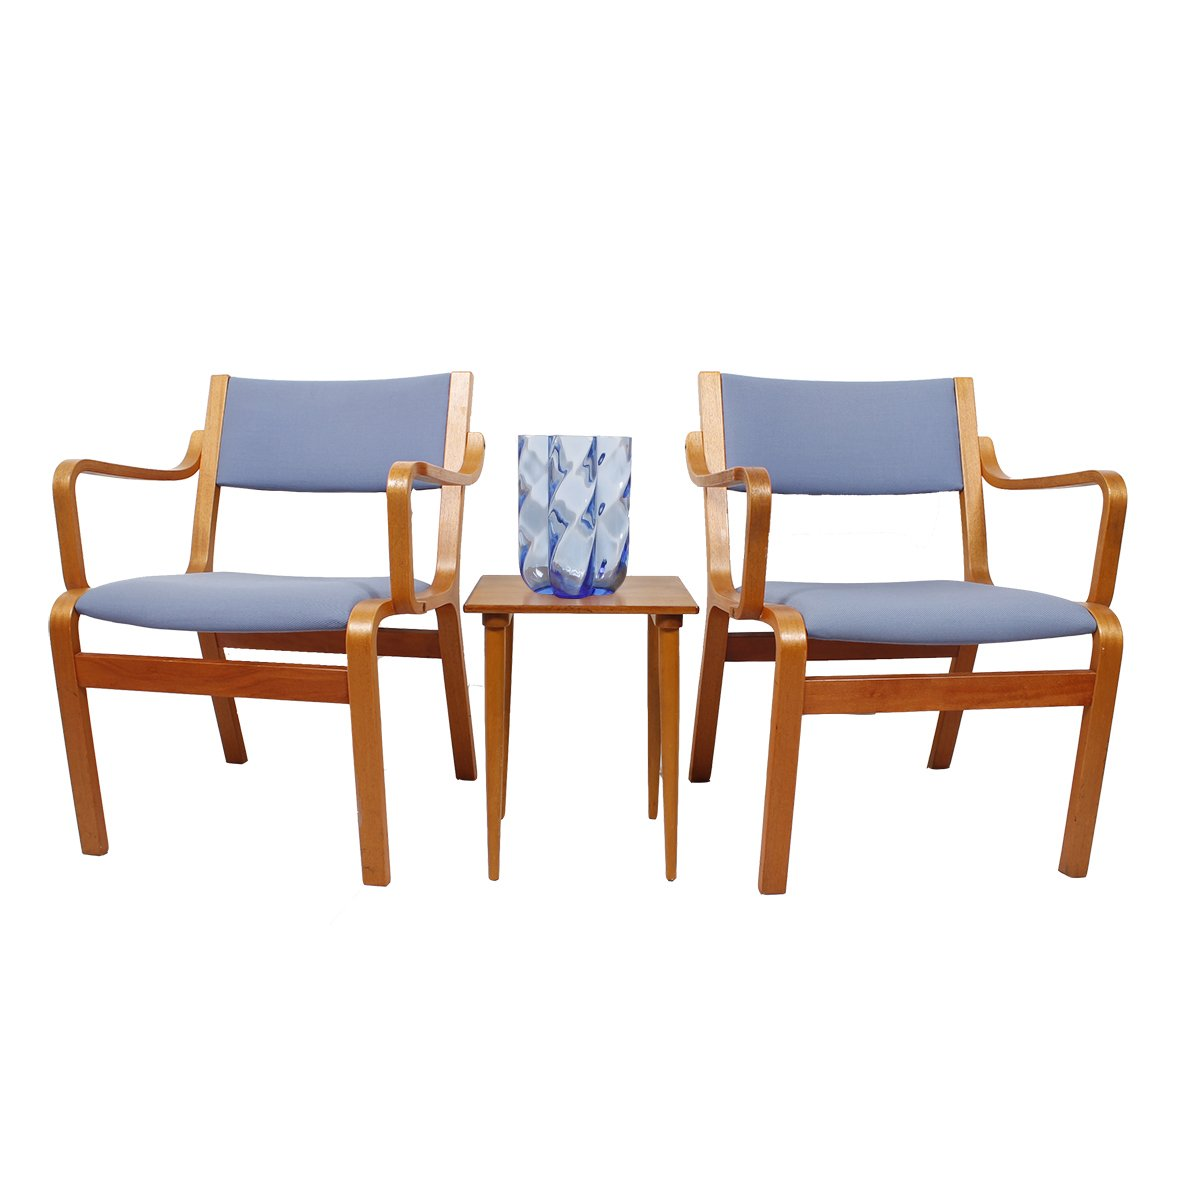 Pair of Bentwood Arm Chairs with Blue Upholstery (from Danish Embassy)